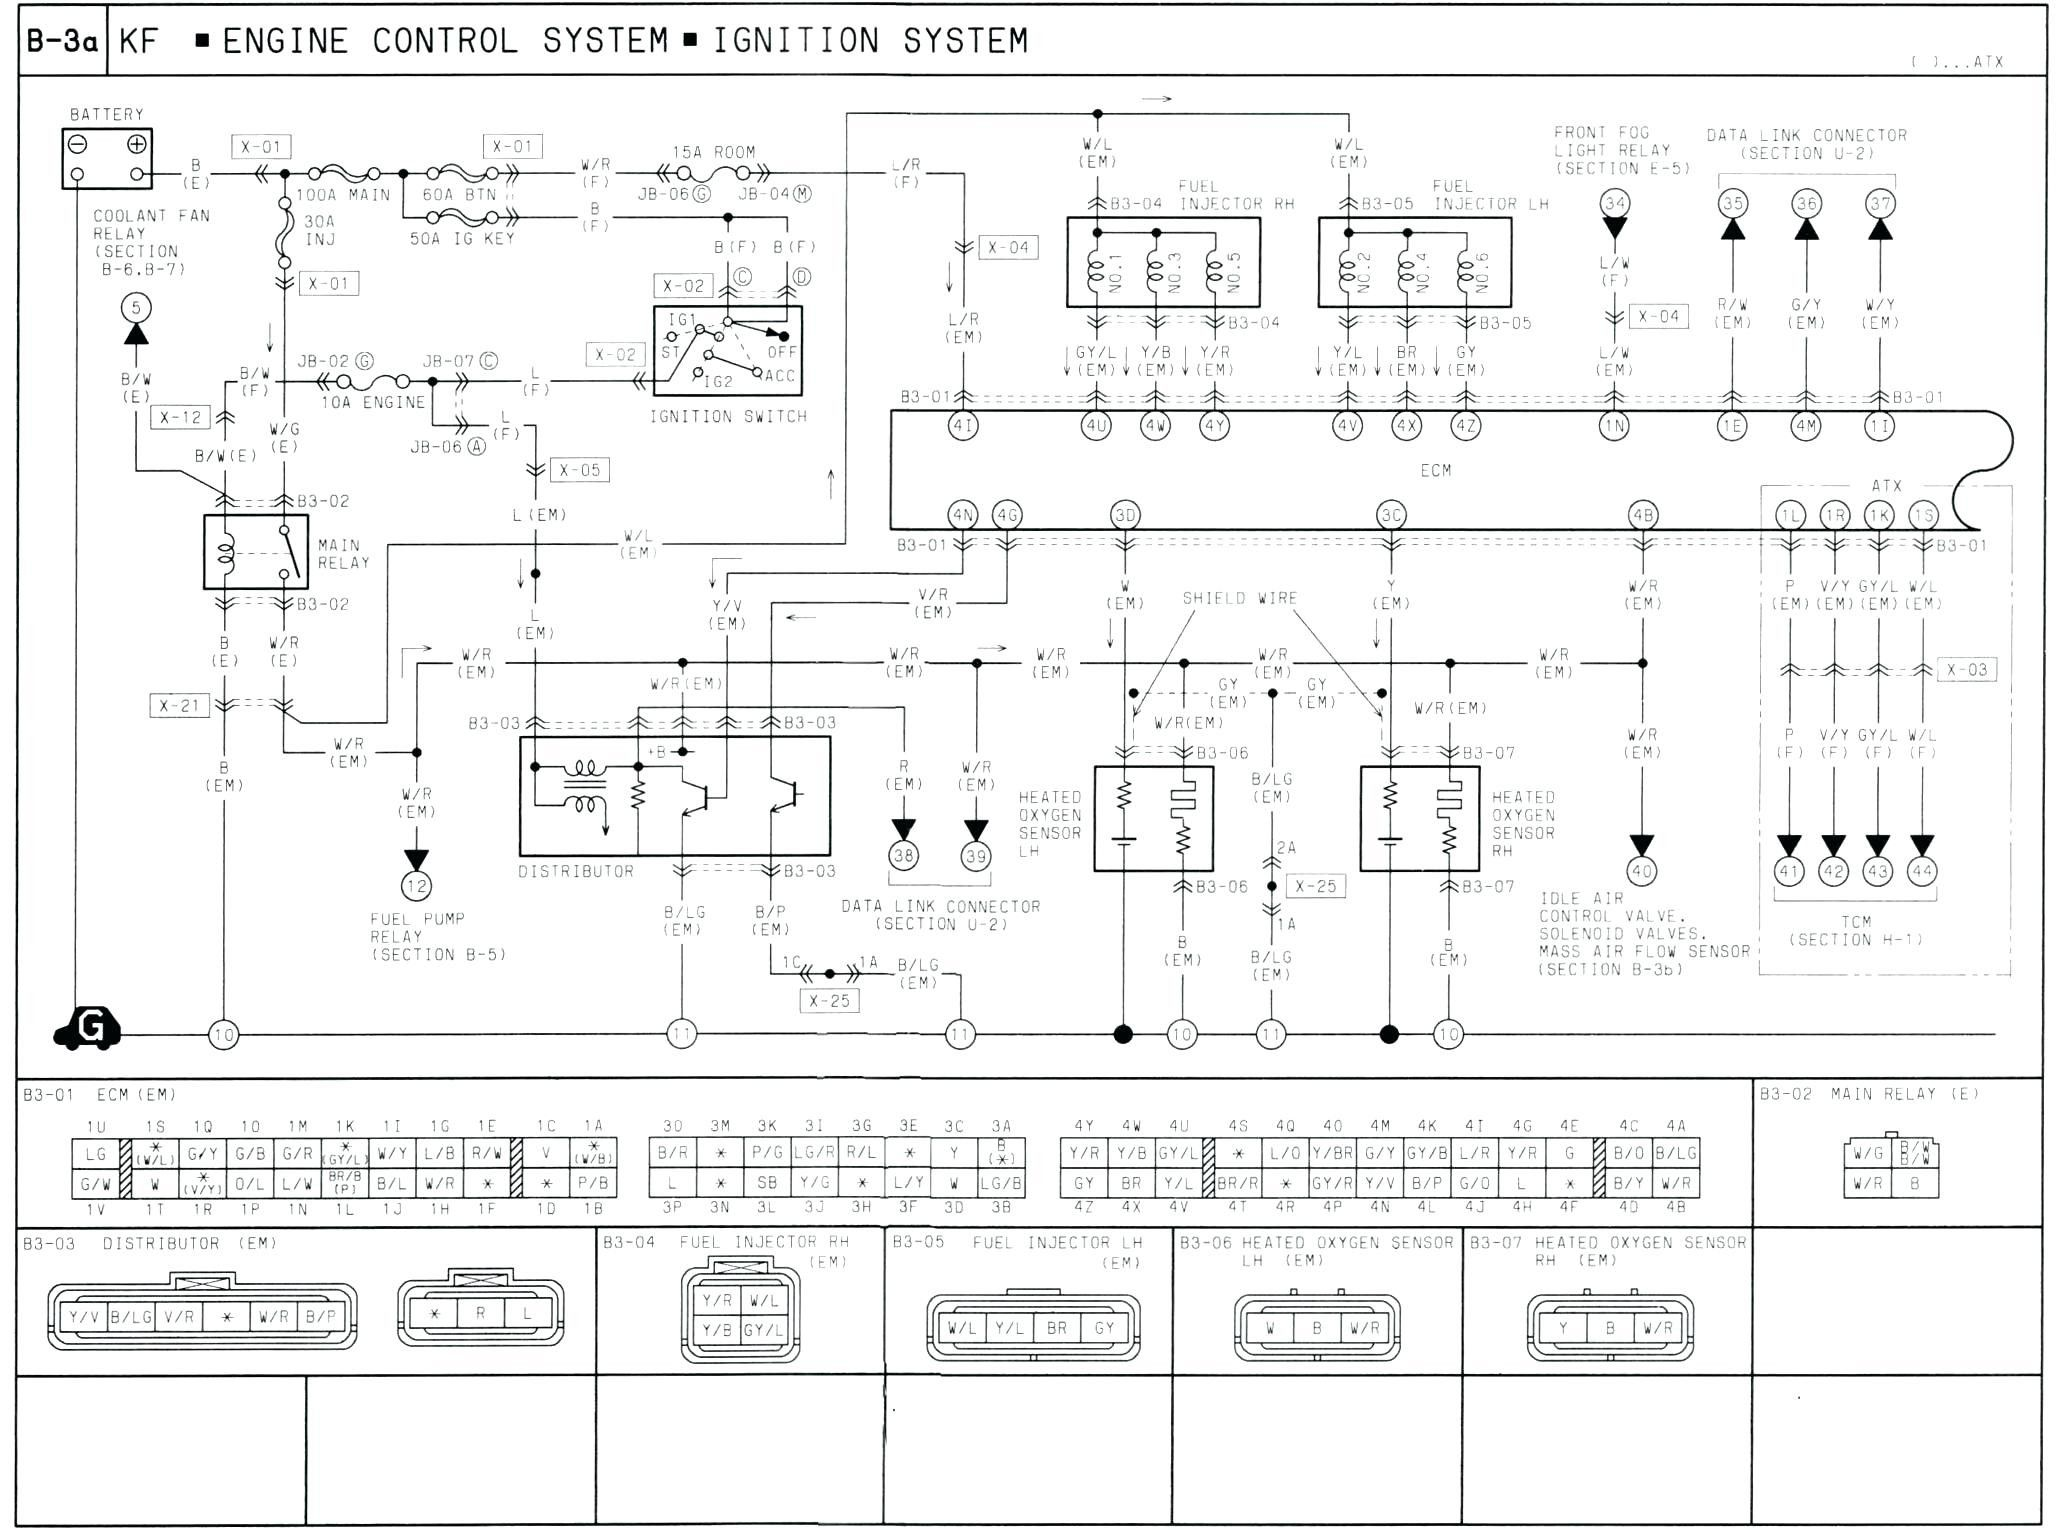 1986 Mazda B2000 Engine Diagram